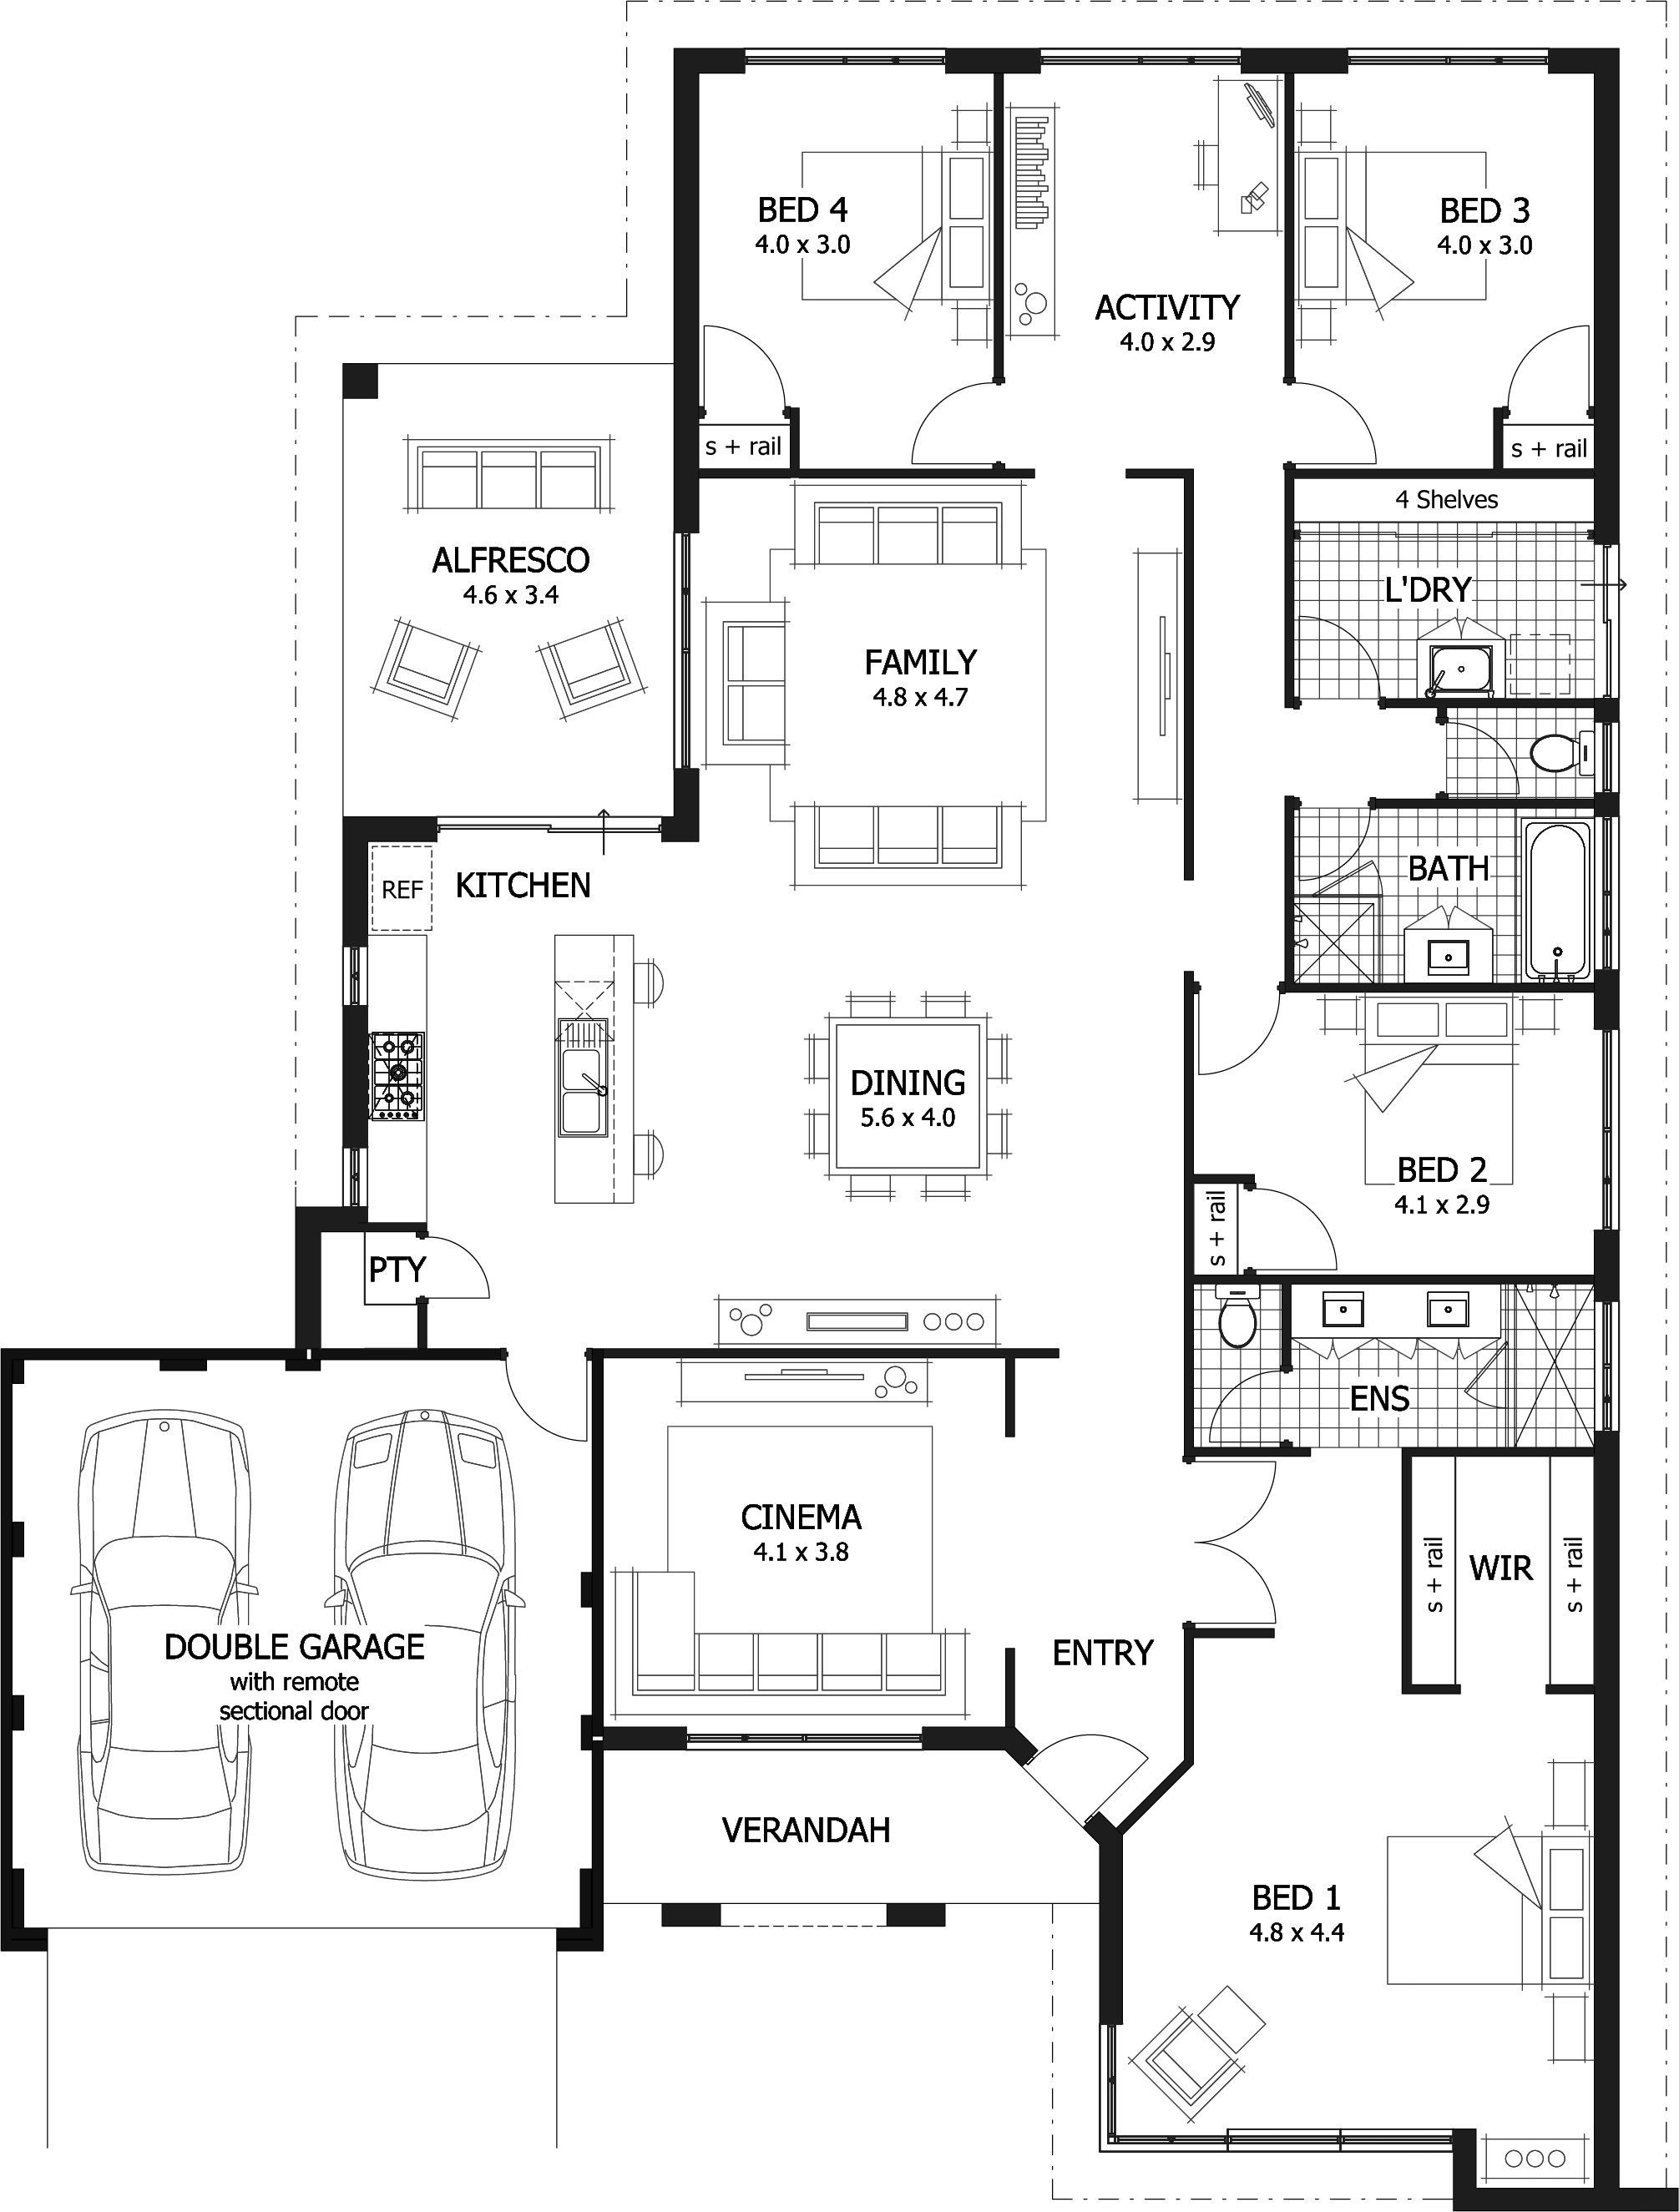 Pinterest Claudiagabg Casa 4 Cuartos 1 Estudio Abierto House Plans Australia 4 Bedroom House Plans Bedroom House Plans